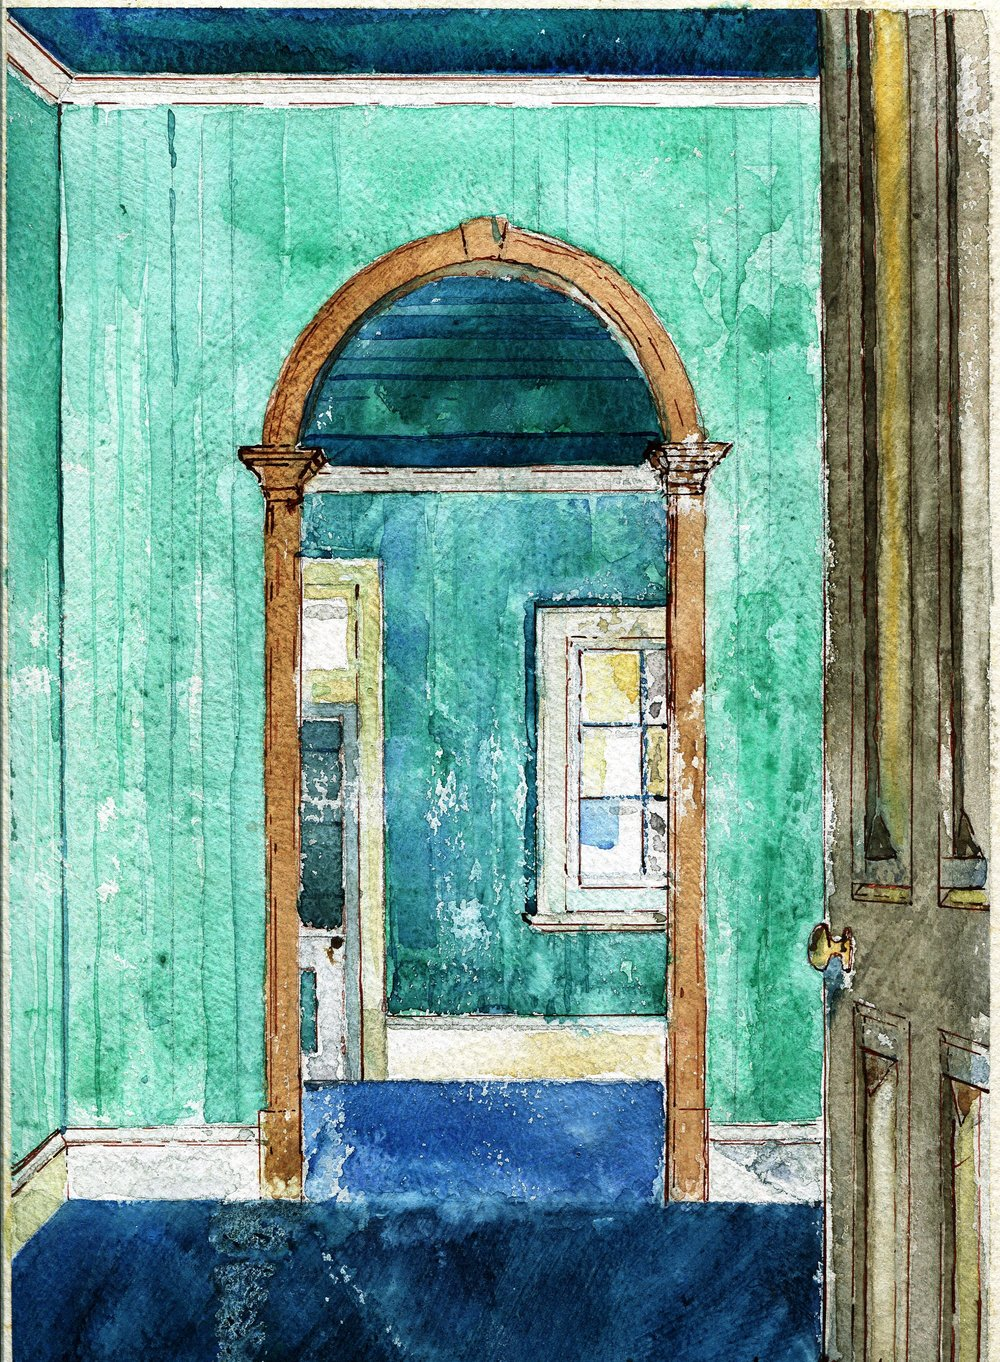 32c Jean Elworthy, Old House, Roseville, Mixed media on paper